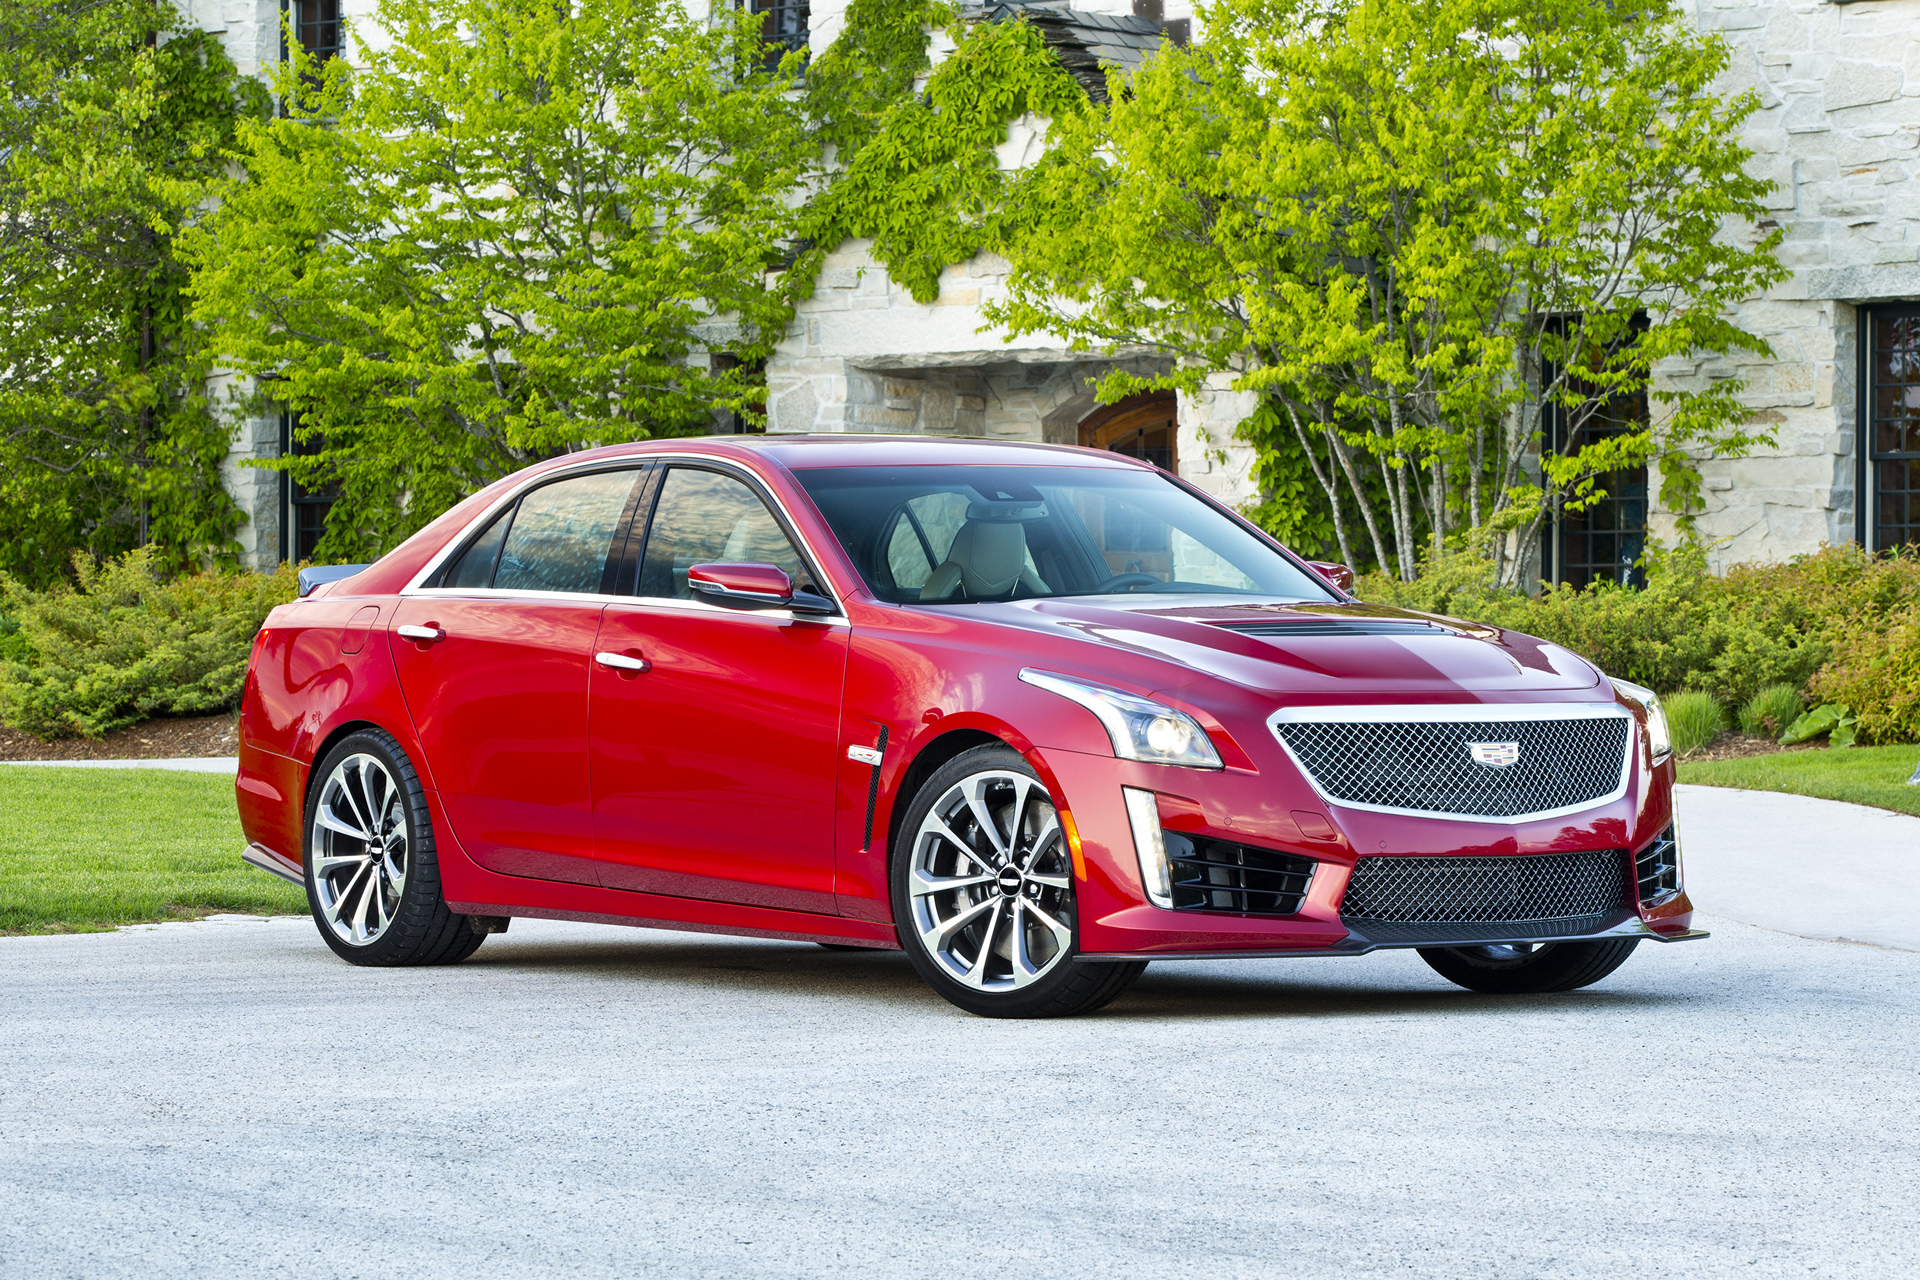 2016 cadillac cts v sedan review carrrs auto portal. Black Bedroom Furniture Sets. Home Design Ideas